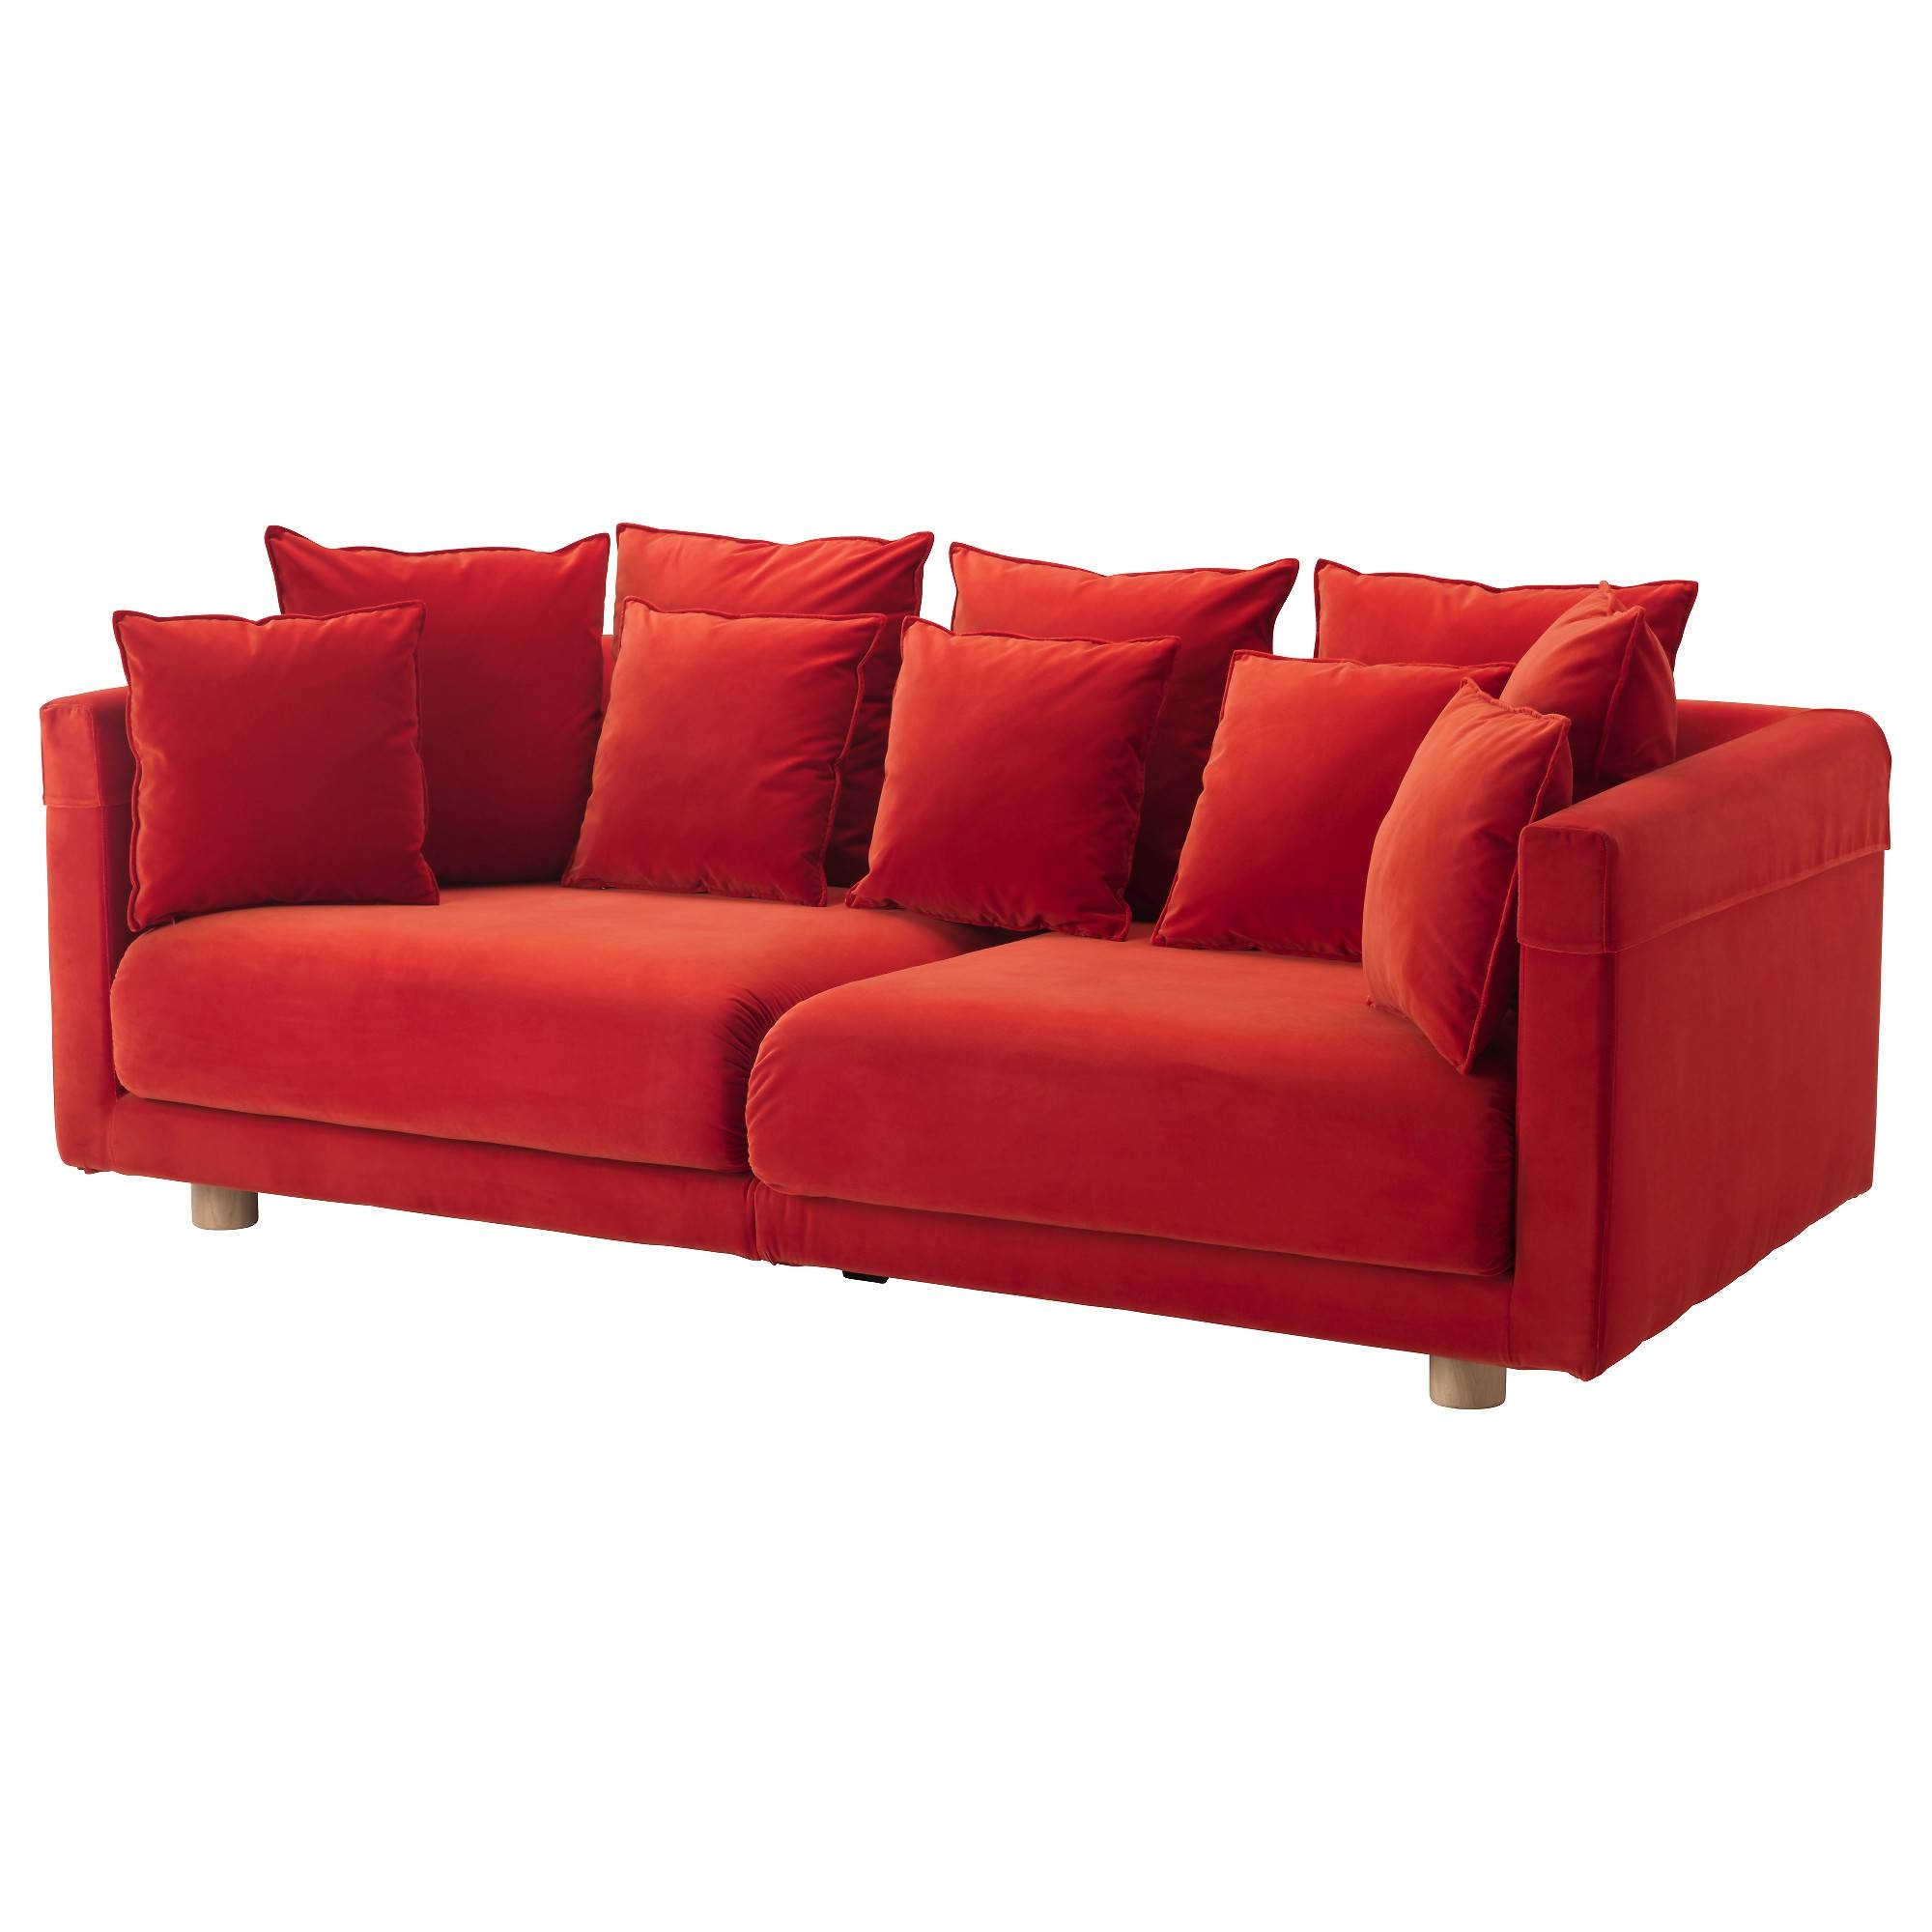 Stockholm 2017 Sofa - Sandbacka Orange - Ikea in Orange Ikea Sofas (Image 26 of 30)